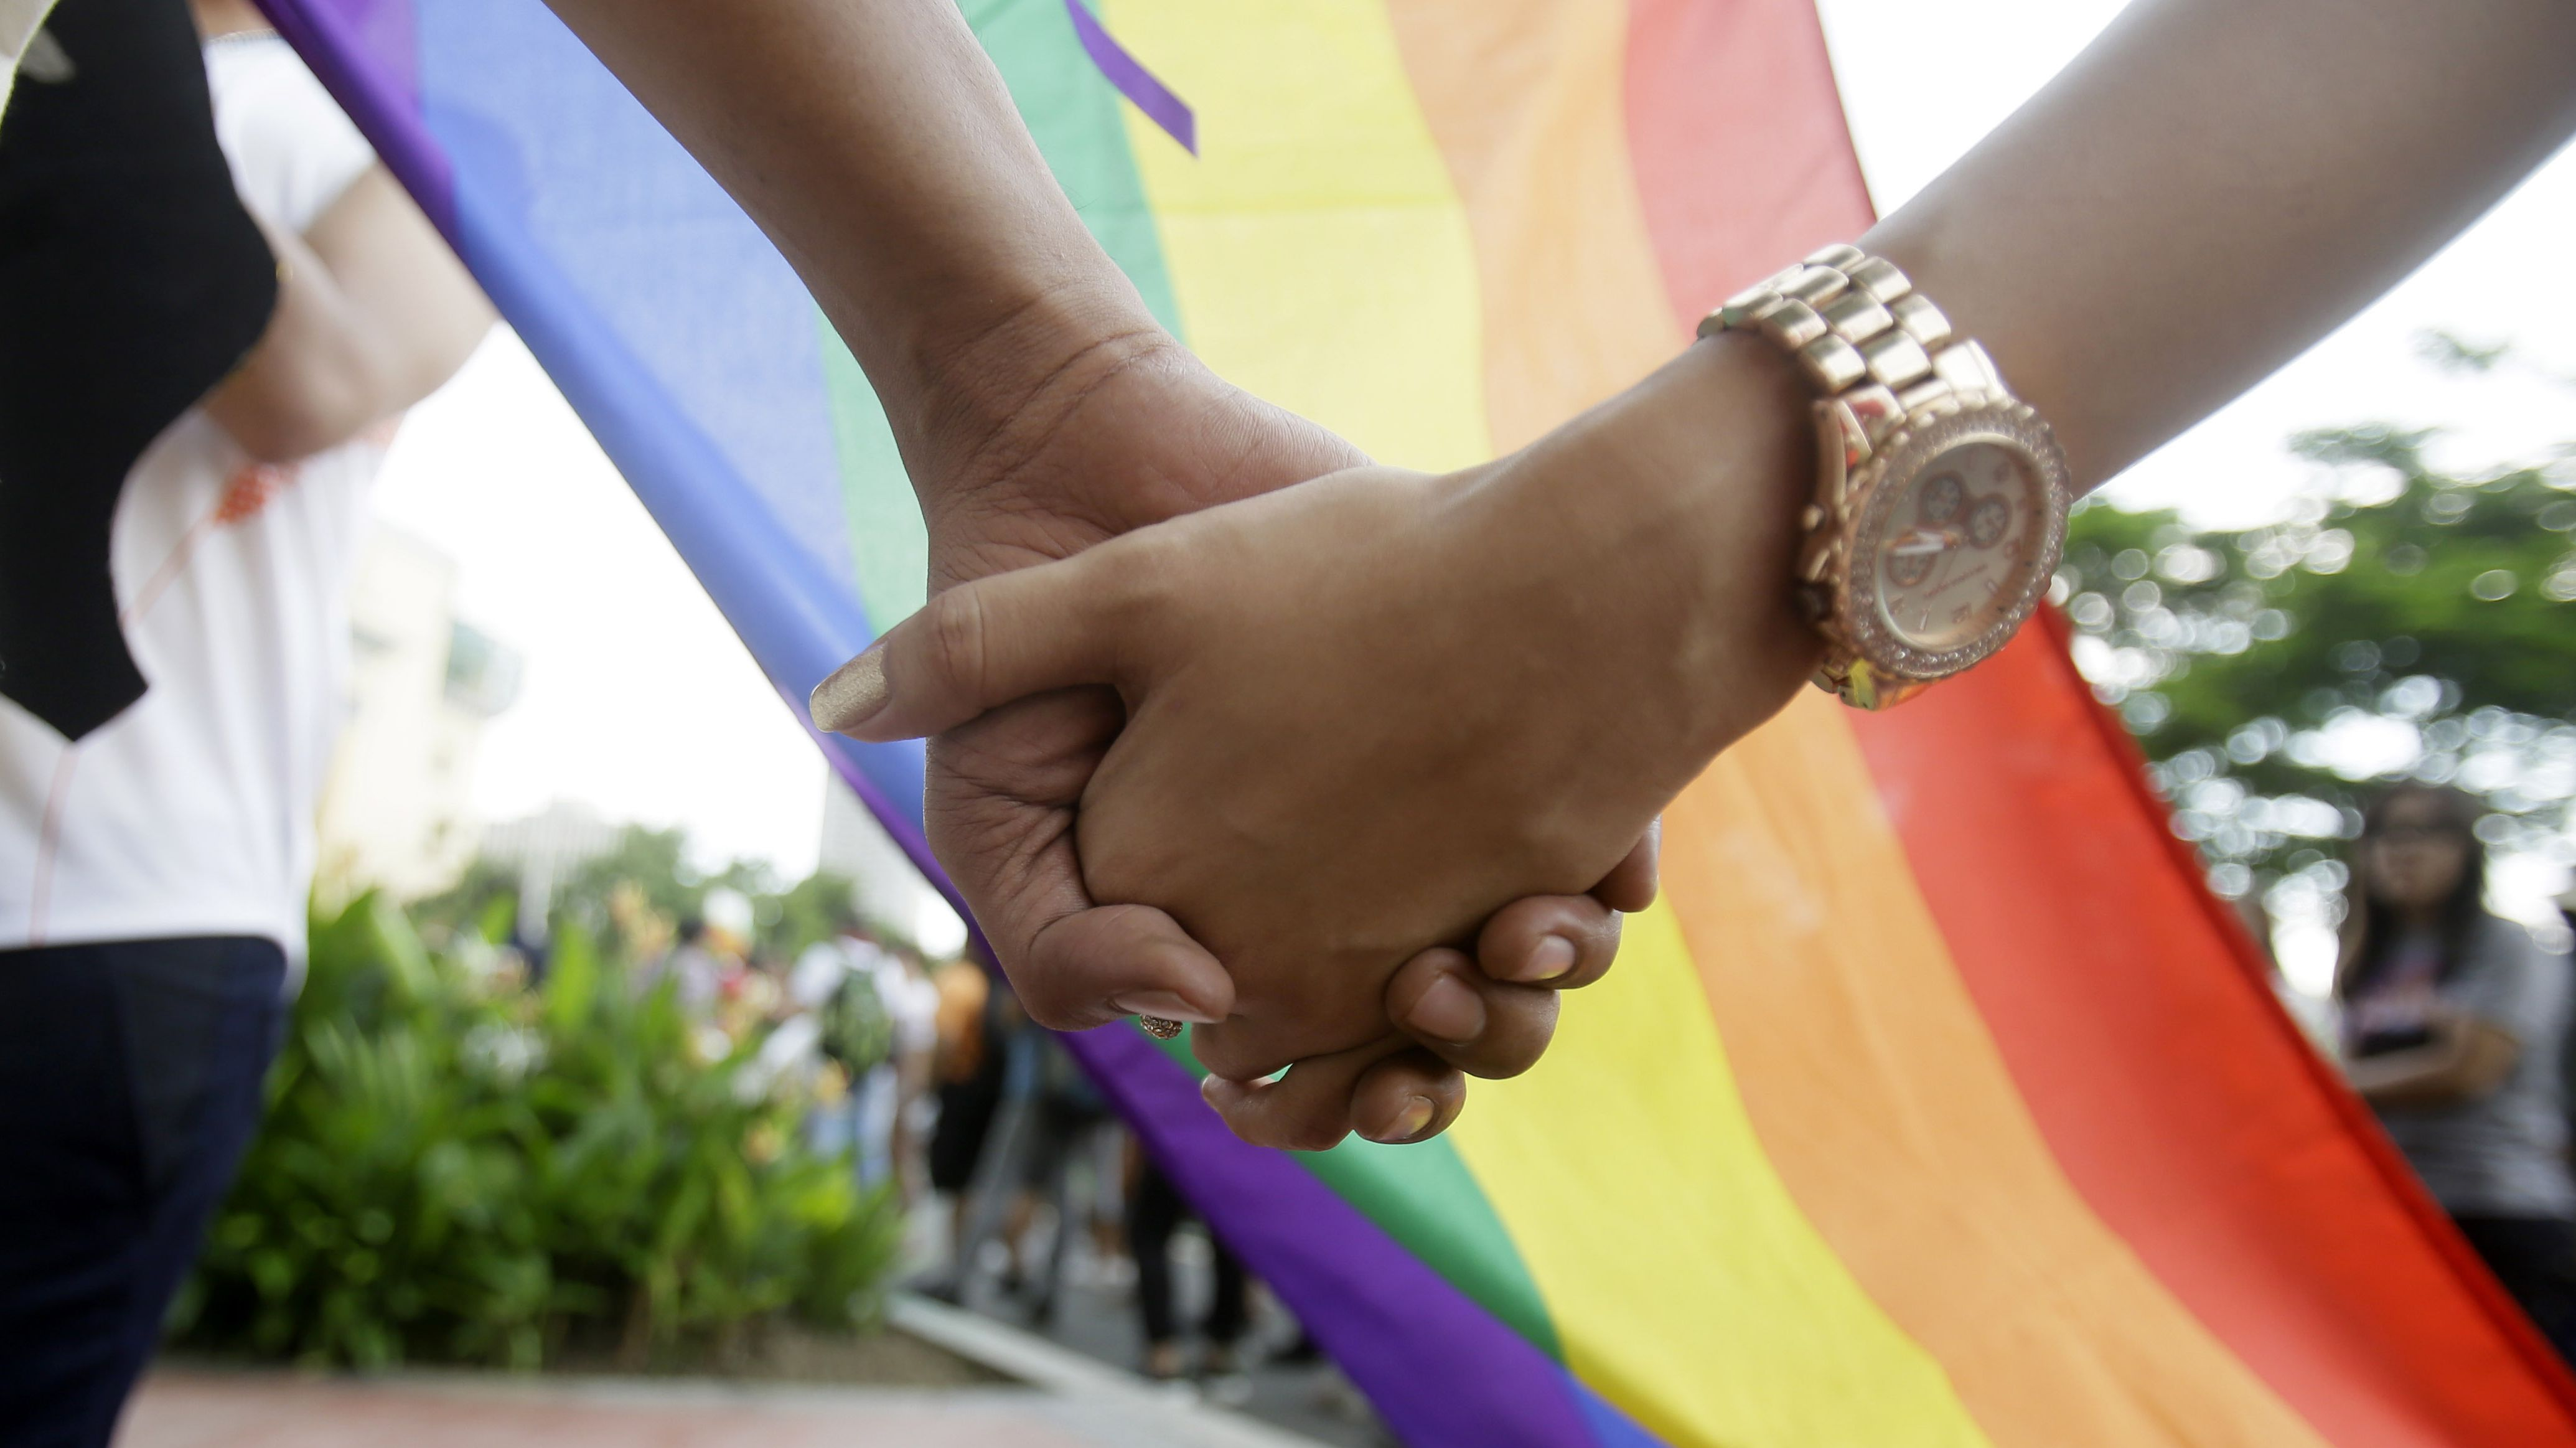 "Filipino LGBTs (Lesbians Gays Bisexual and Transgenders) hold hands as they gather for a Gay Pride rally Saturday, June 27, 2015 in Mania, Philippines to push for LGBT rights and to celebrate the U.S. Supreme Court decision recognizing gay marriages in all U.S. states as a victory for their cause. The rally was scheduled to commemorate the 1969 demonstrations in New York City that started the gay rights movement around the world. Jonas Bagas, executive director of the pro-LGBT rights group TLF Share, said the U.S. court ruling ""will reverberate in other corners of the world."" (AP Photo/Bullit Marquez)"